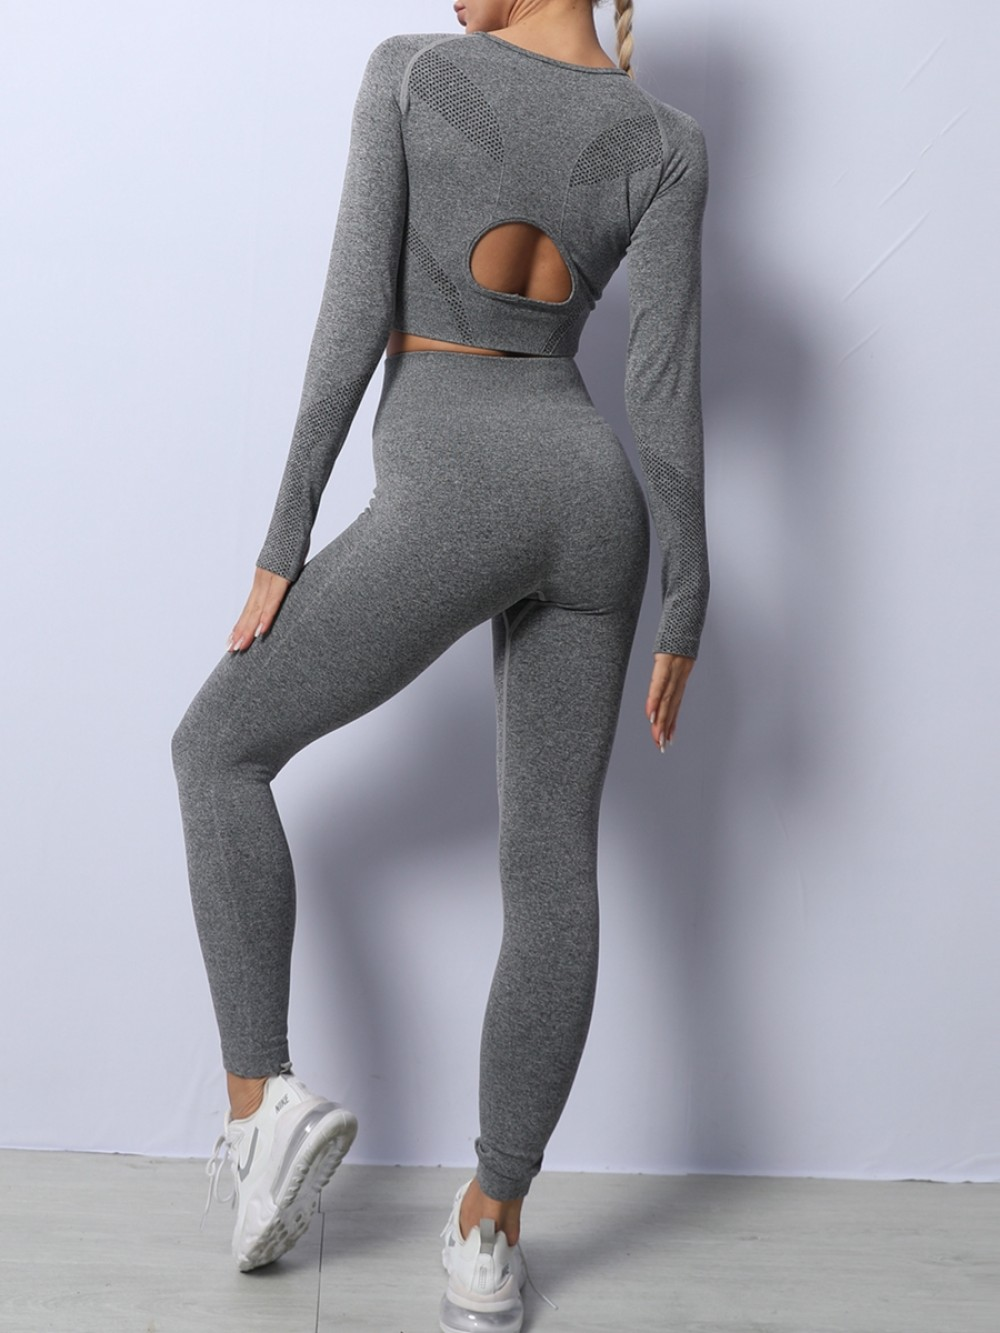 Gray Seamless Long Sleeve Hollow Out Yoga Suit Slim Legs